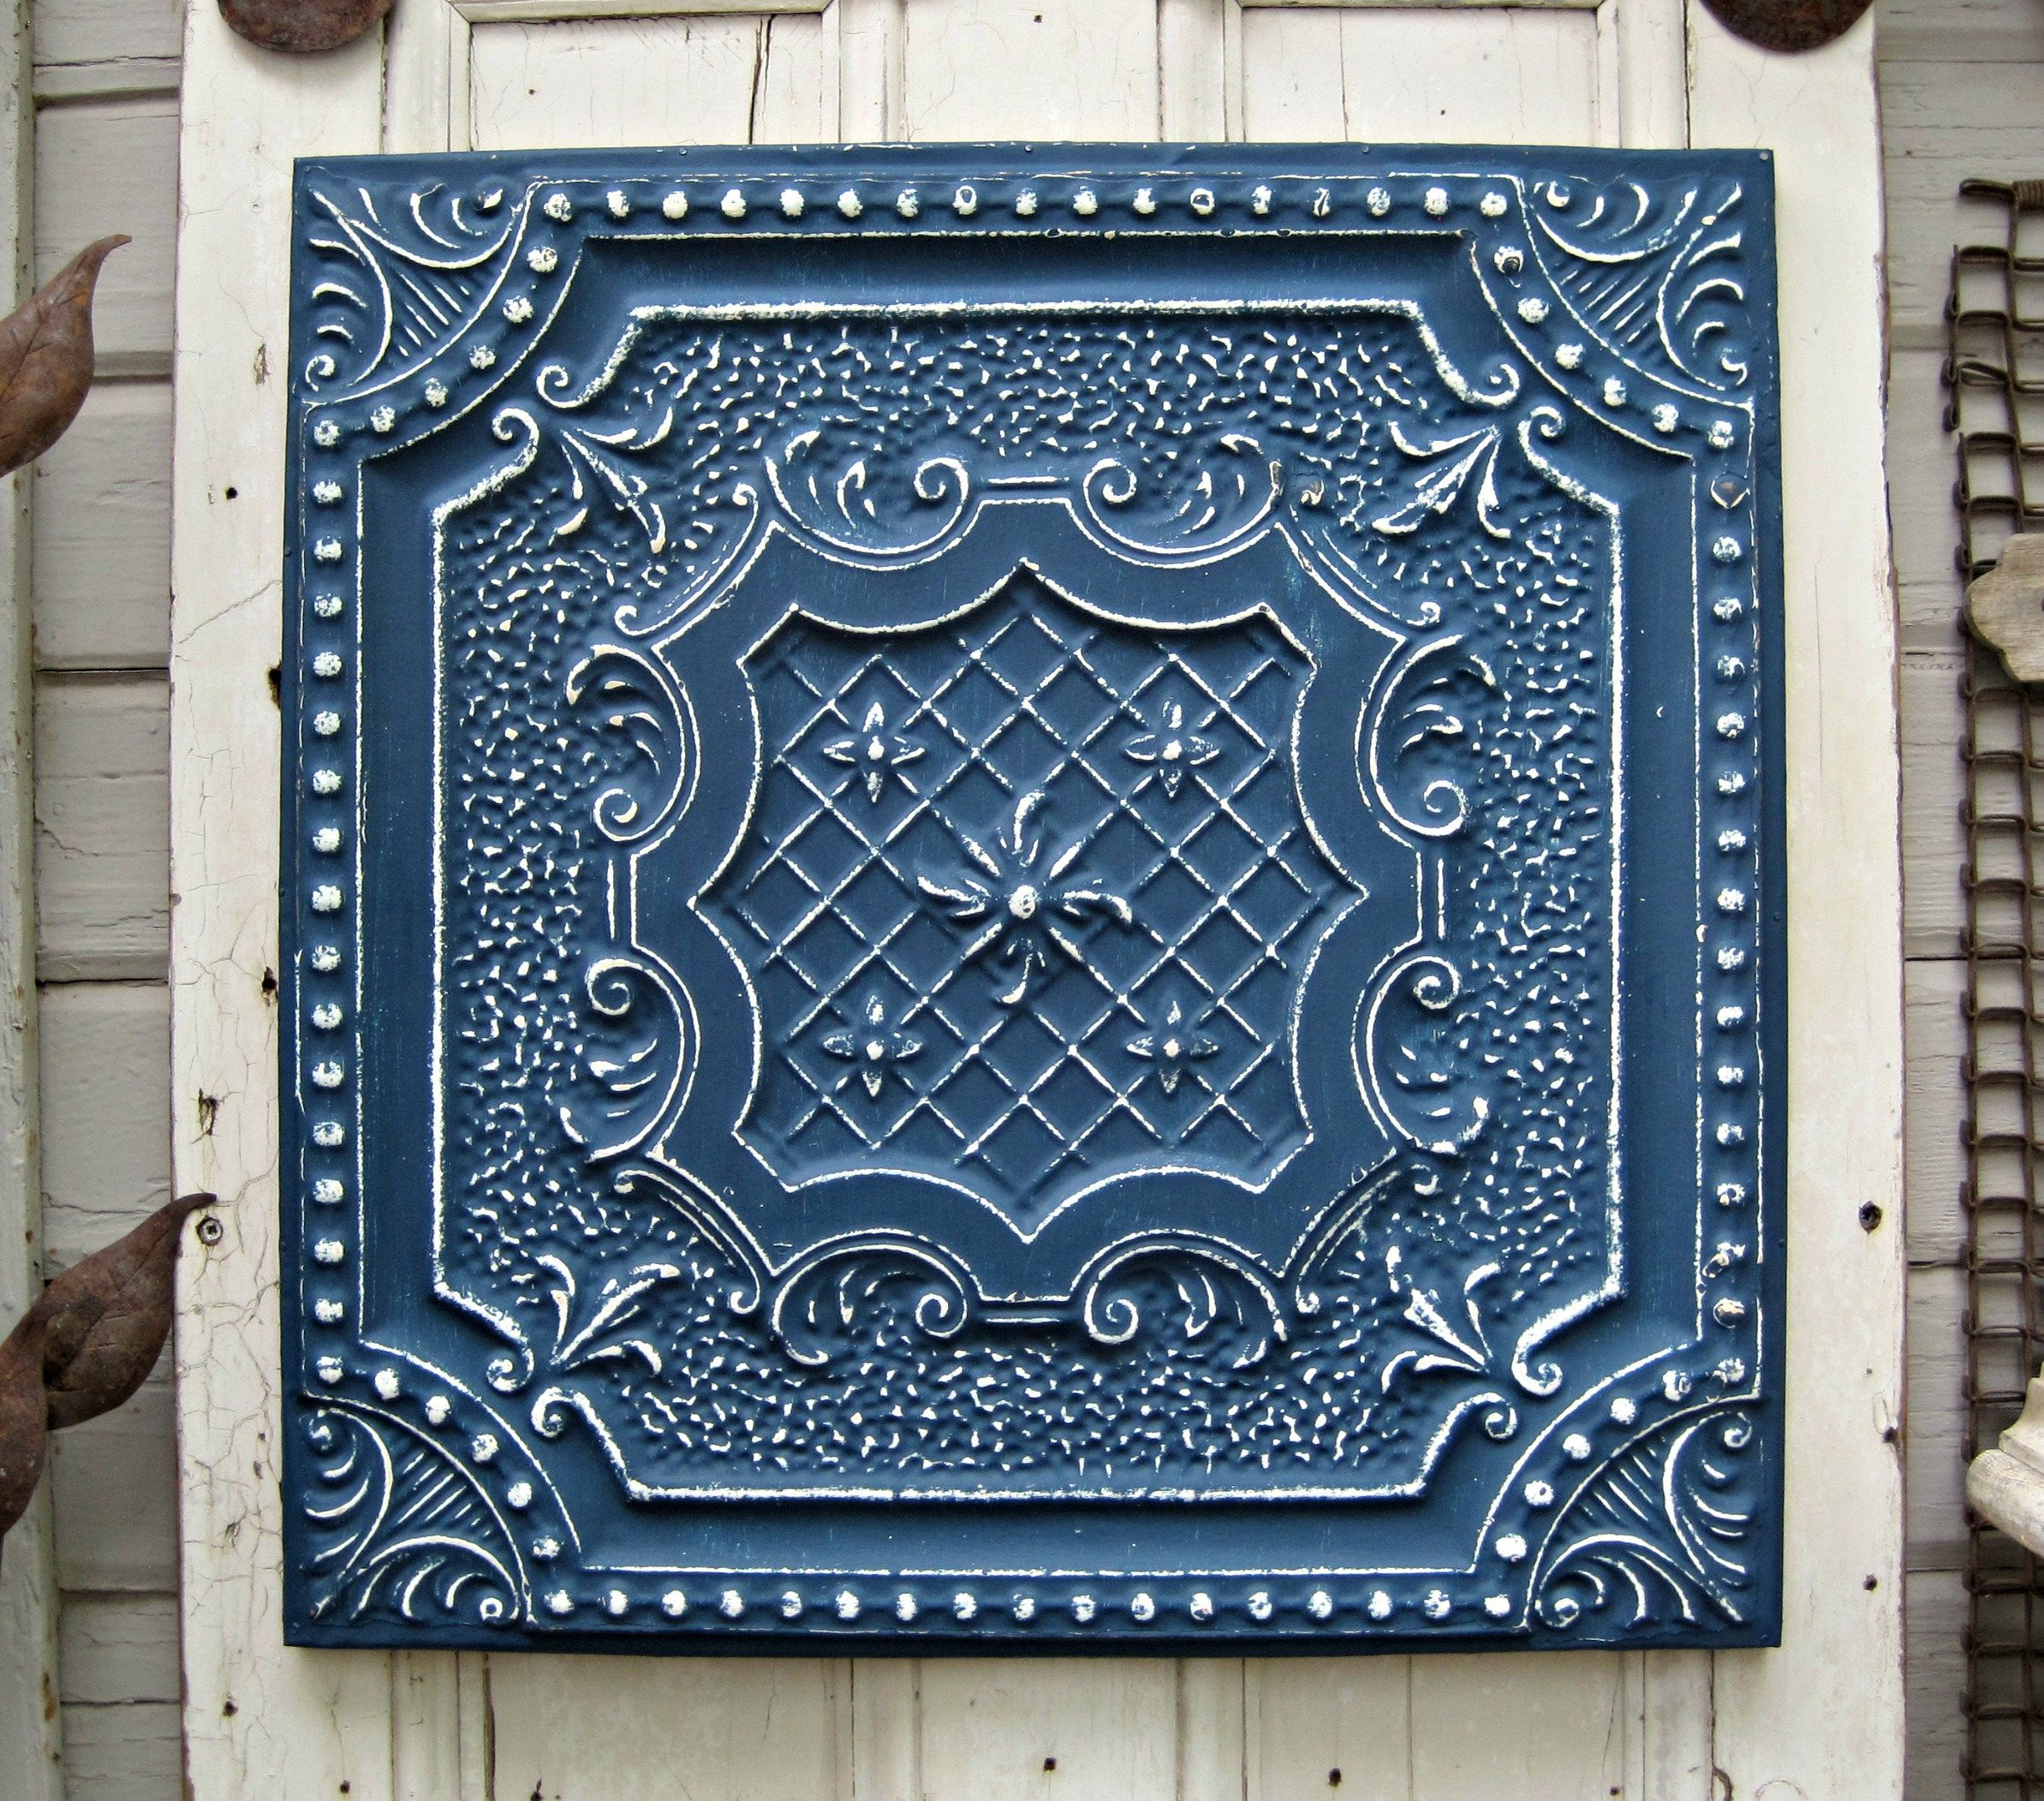 Tin ceiling tile texas architectural salvage indigo blue navy tin ceiling tile texas architectural salvage indigo blue navy blue large metal wall decor beach decor vintage blue wall art decor dailygadgetfo Image collections